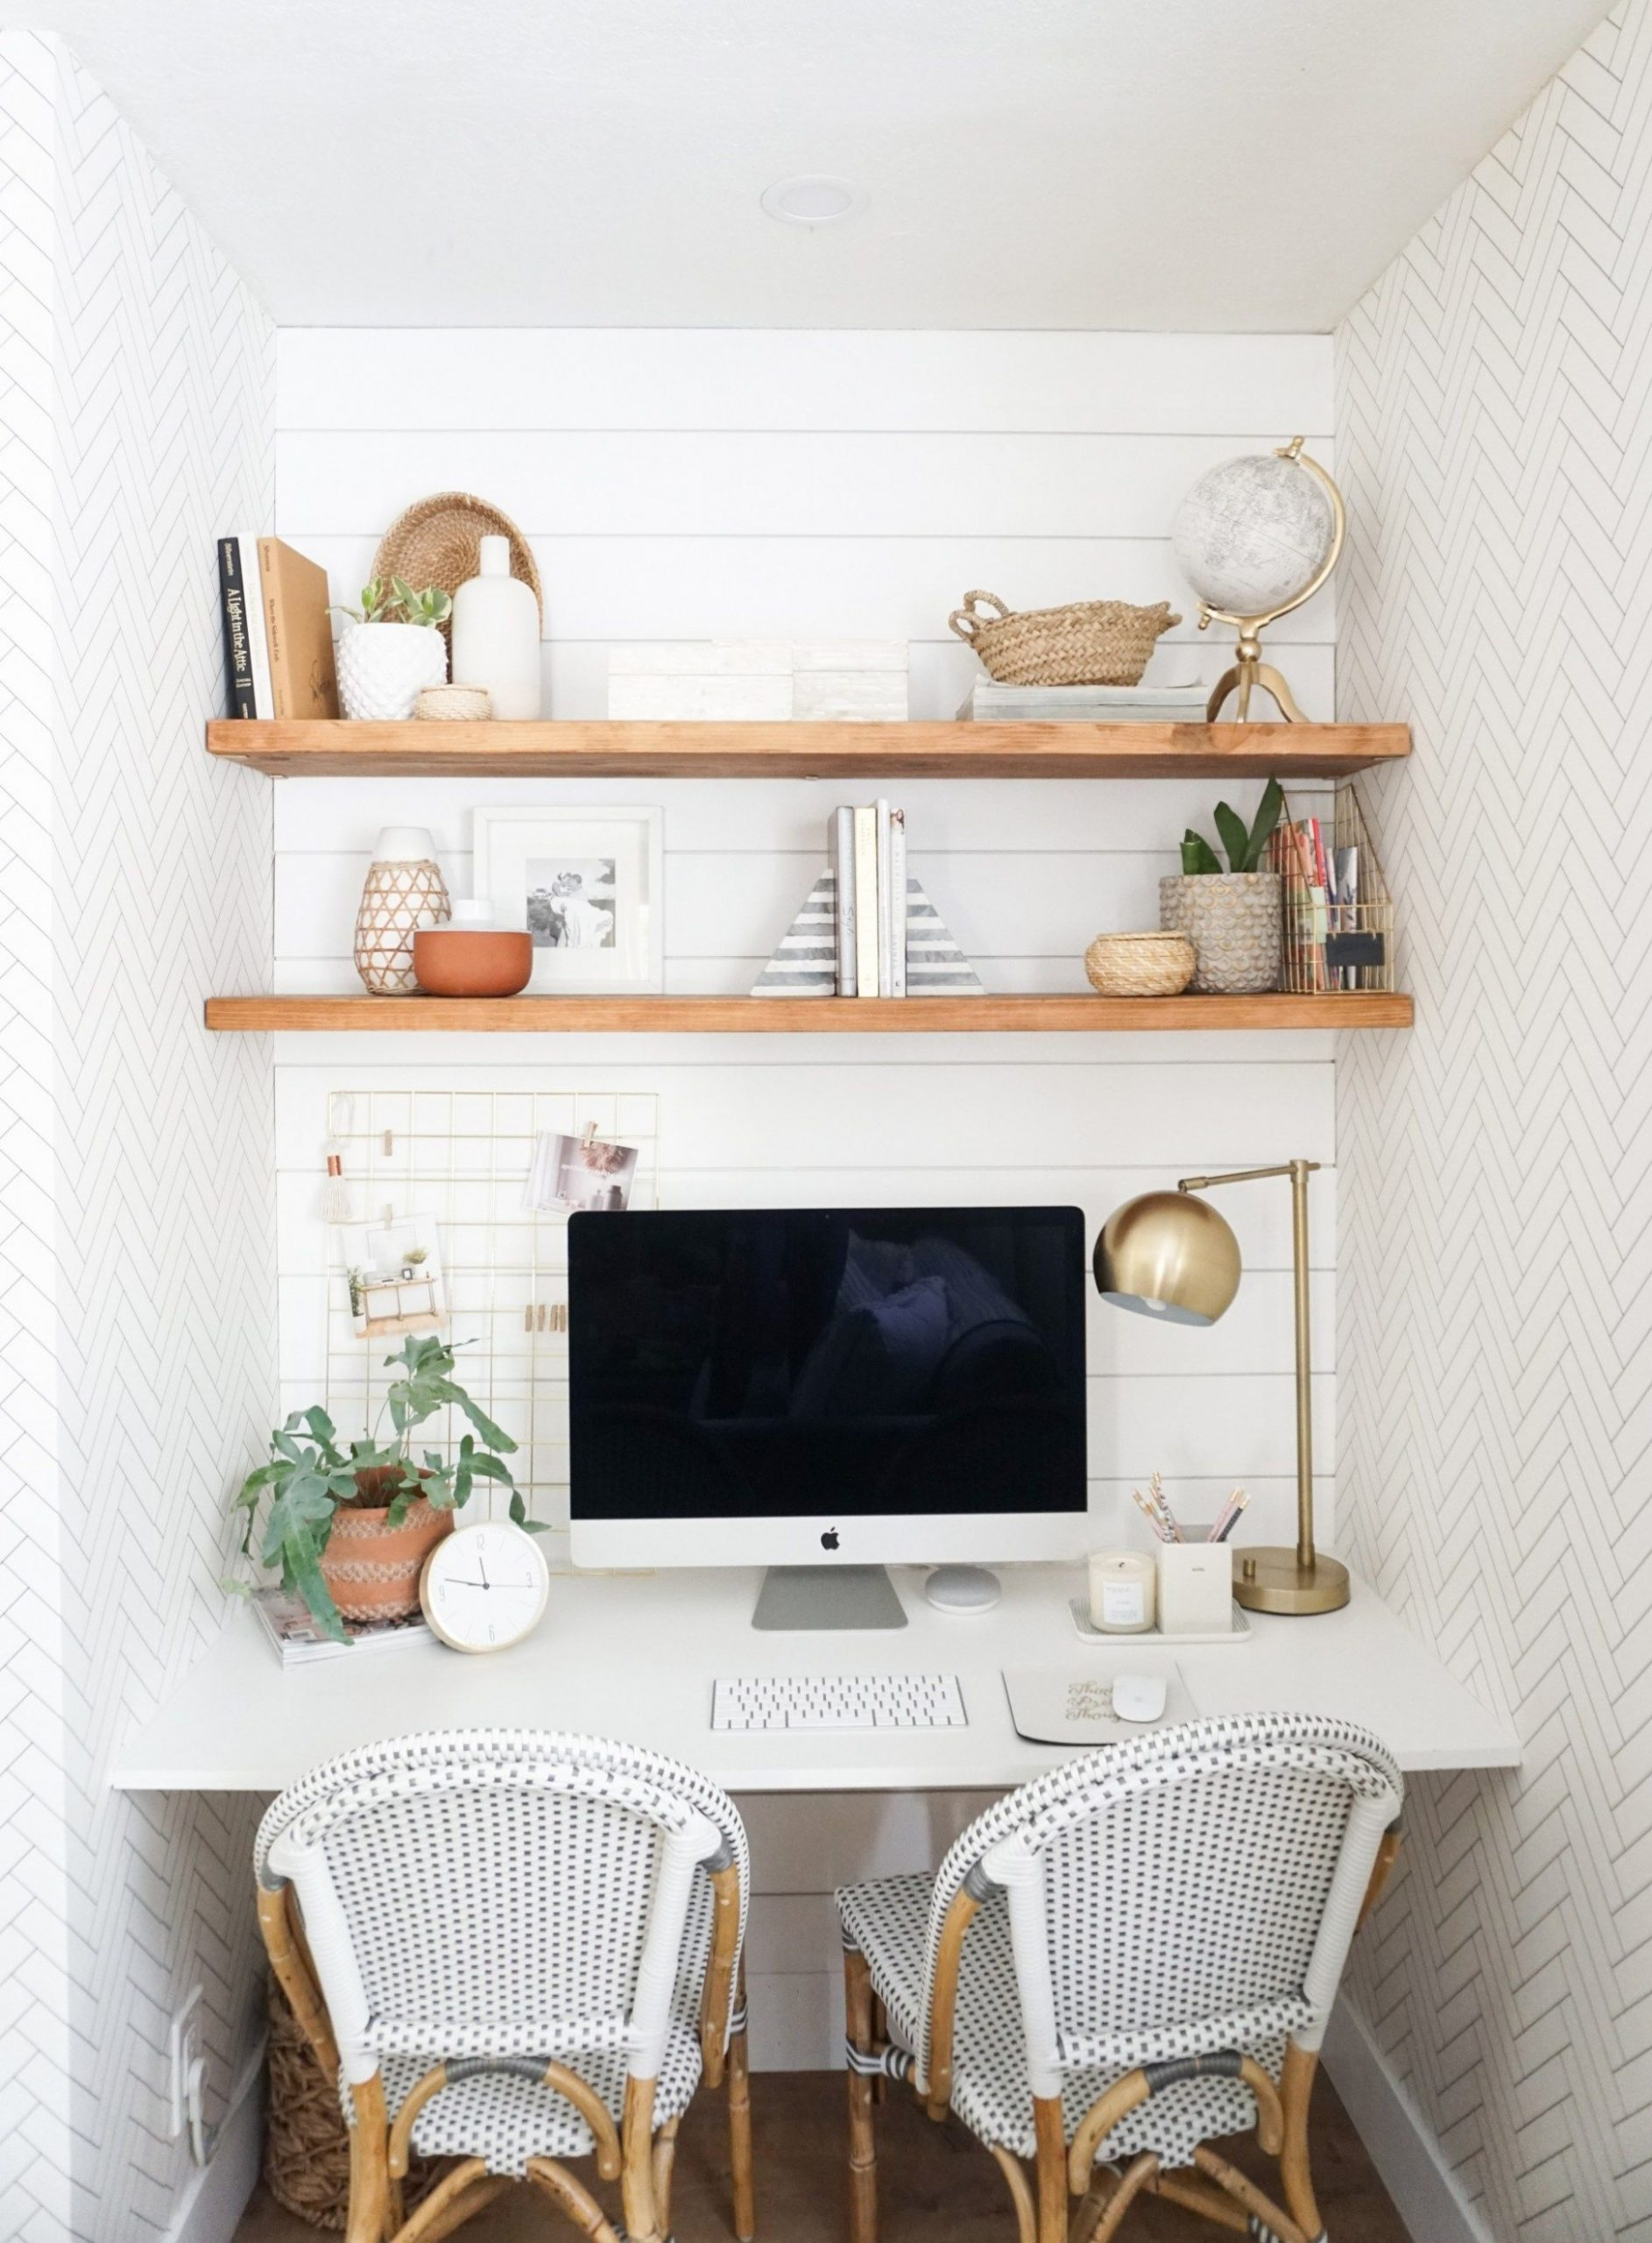 12 DIY Home Office Decor Ideas - Best Home Office Decor Projects - Home Office Ideas Diy